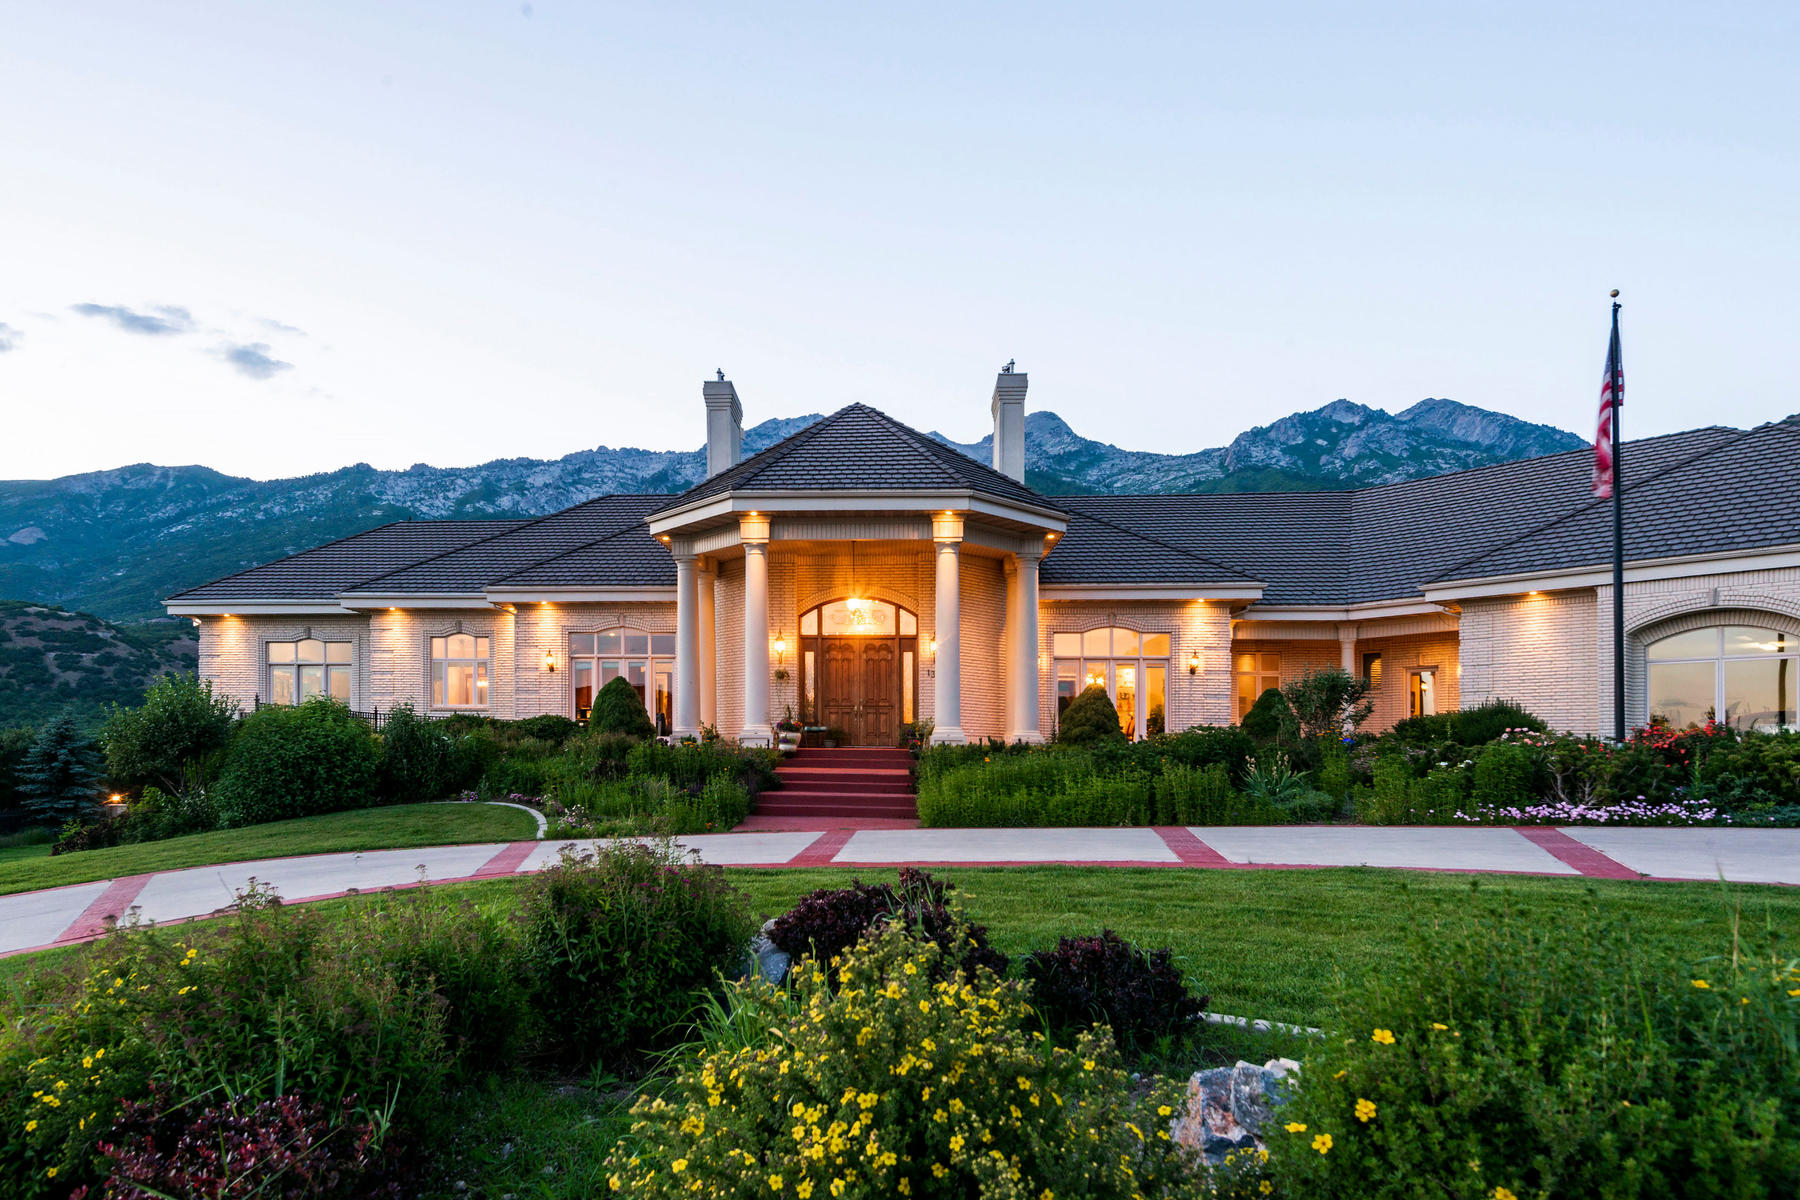 Single Family Homes for Active at One of a Kind Enclave Away From the Urban Hustle 1389 E Box Elder Dr Alpine, Utah 84004 United States